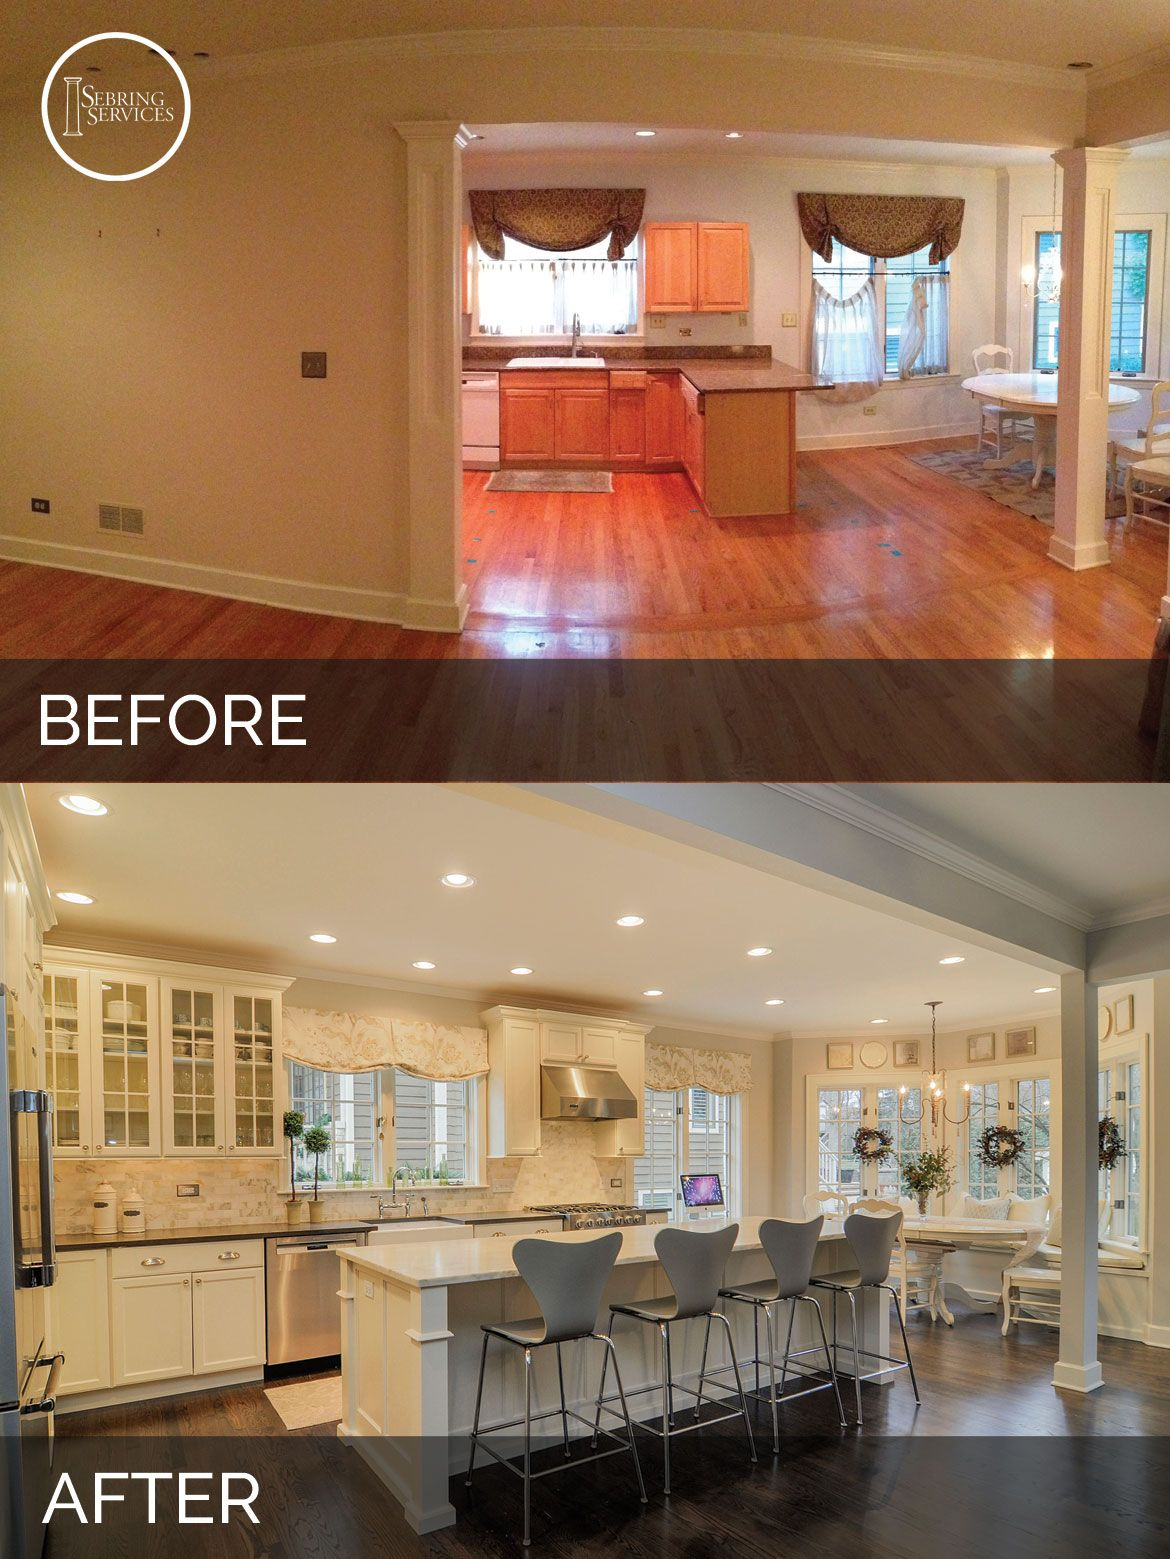 Remodel A Kitchen Stainless Sink Check Out Some Website Designs Home Decor Before And After Remodeling Sebring Services